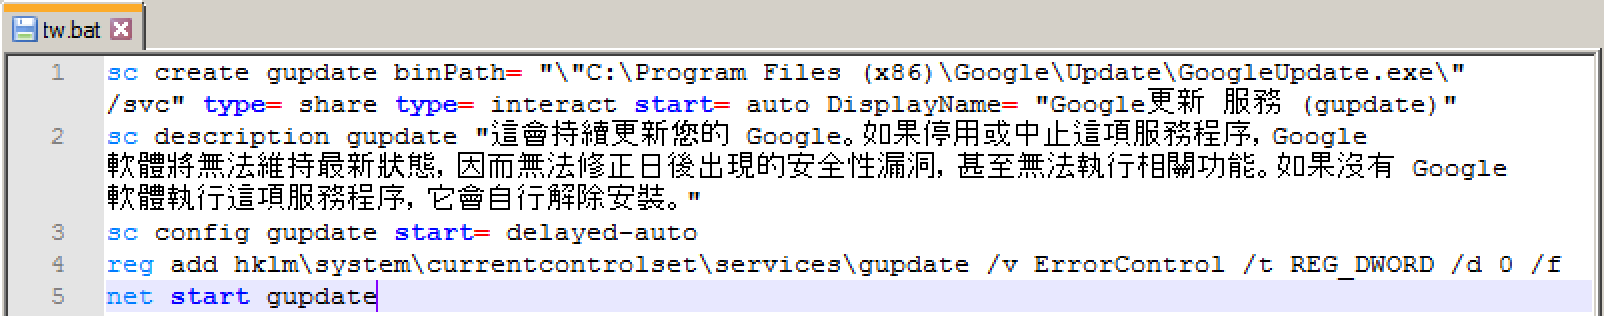 Figure 9. The executable version will install and name it as a Windows service, change registry to disable error display, and launch the service